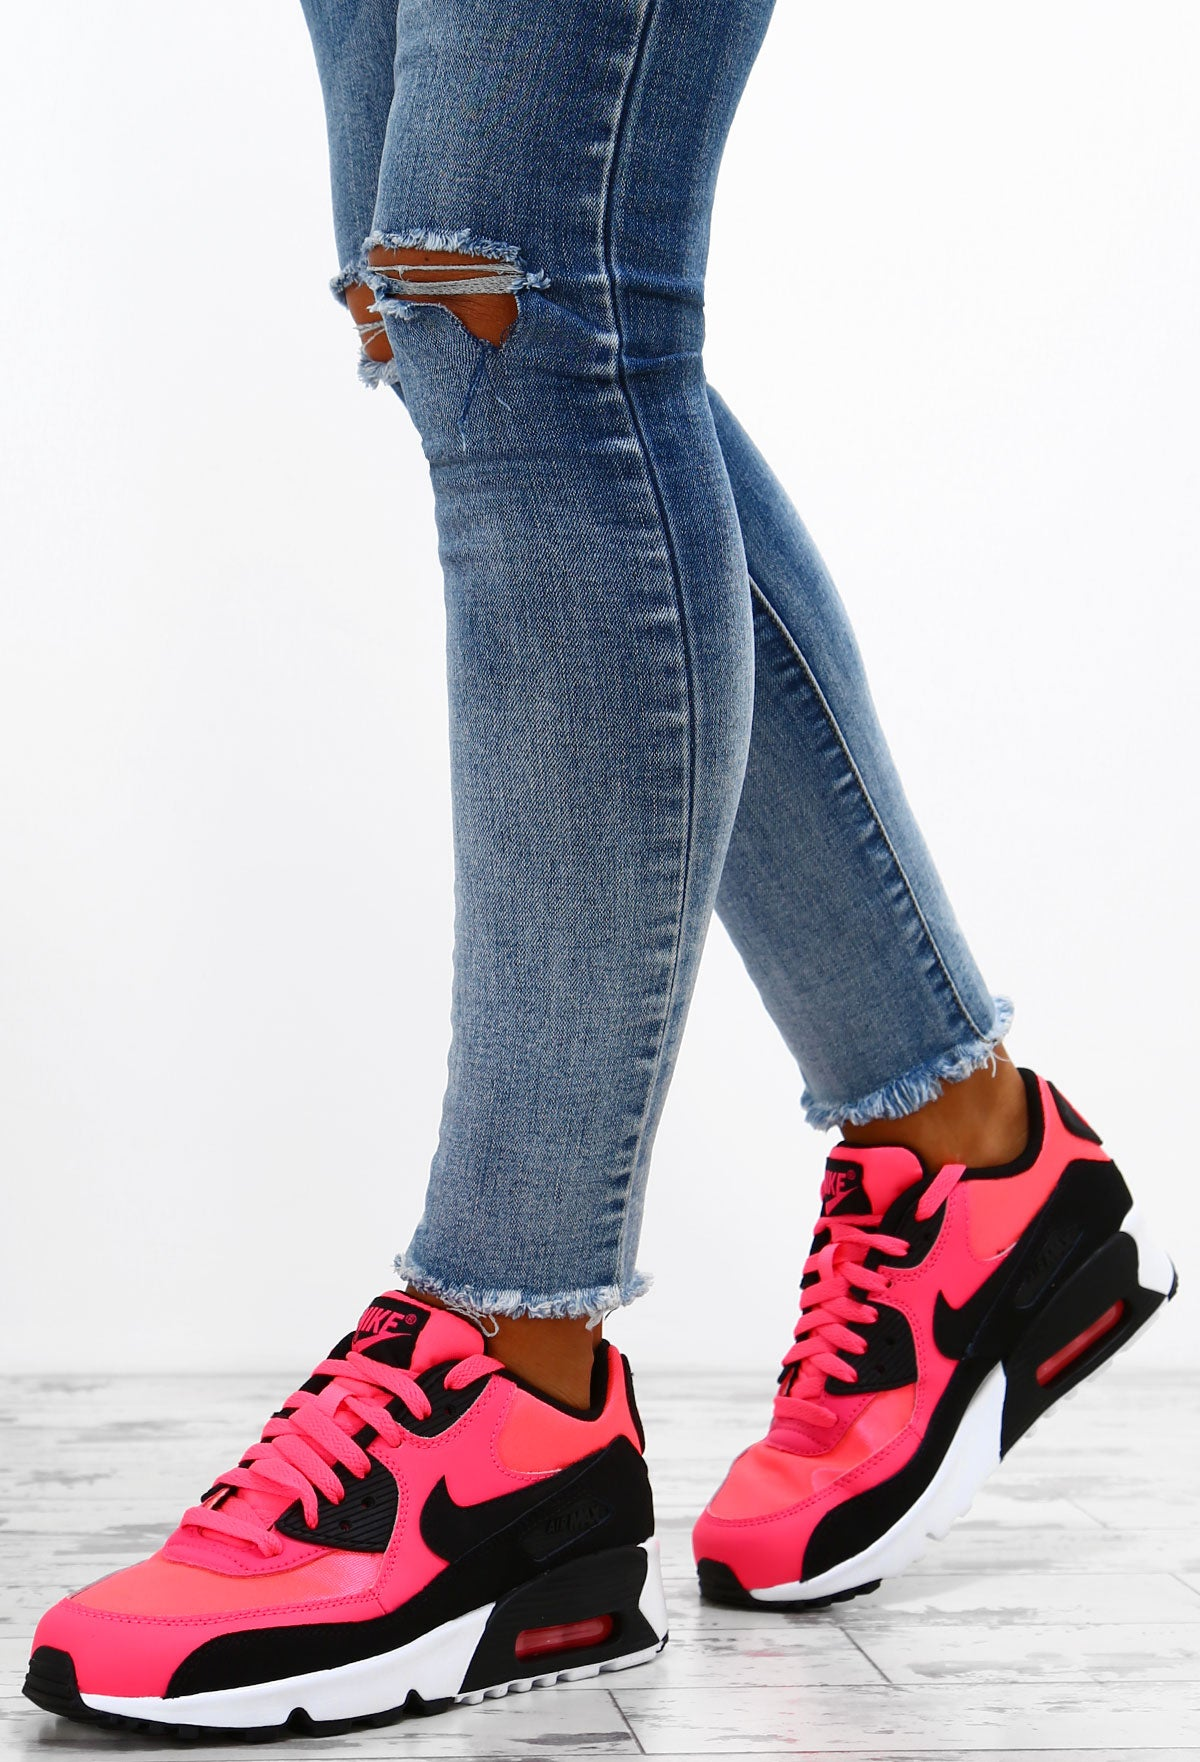 on sale 4ed6c c08ec Nike Air Max 90 Pink and Black Trainers – Pink Boutique UK